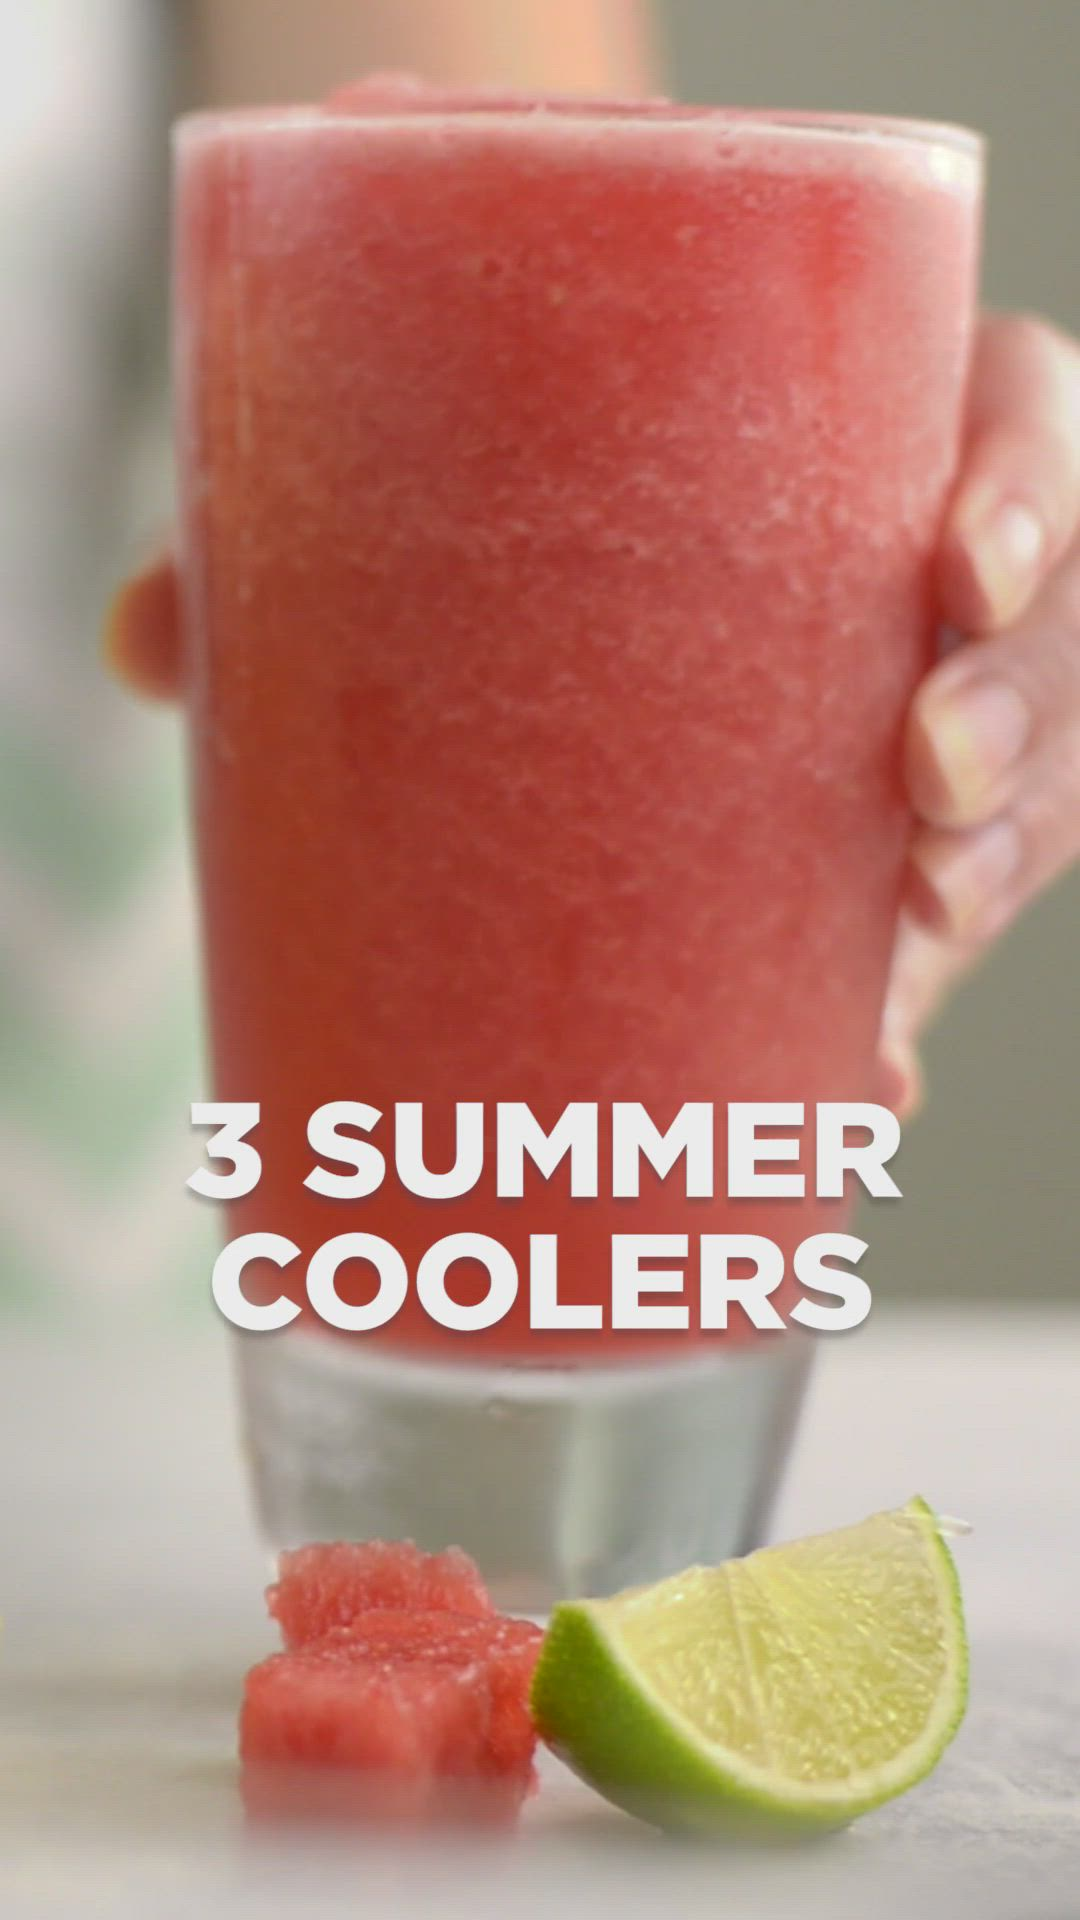 3 Refreshing Summer Coolers Video Recipe Video Homemade Drinks Healthy Drinks Smoothies Healthy Drinks Recipes